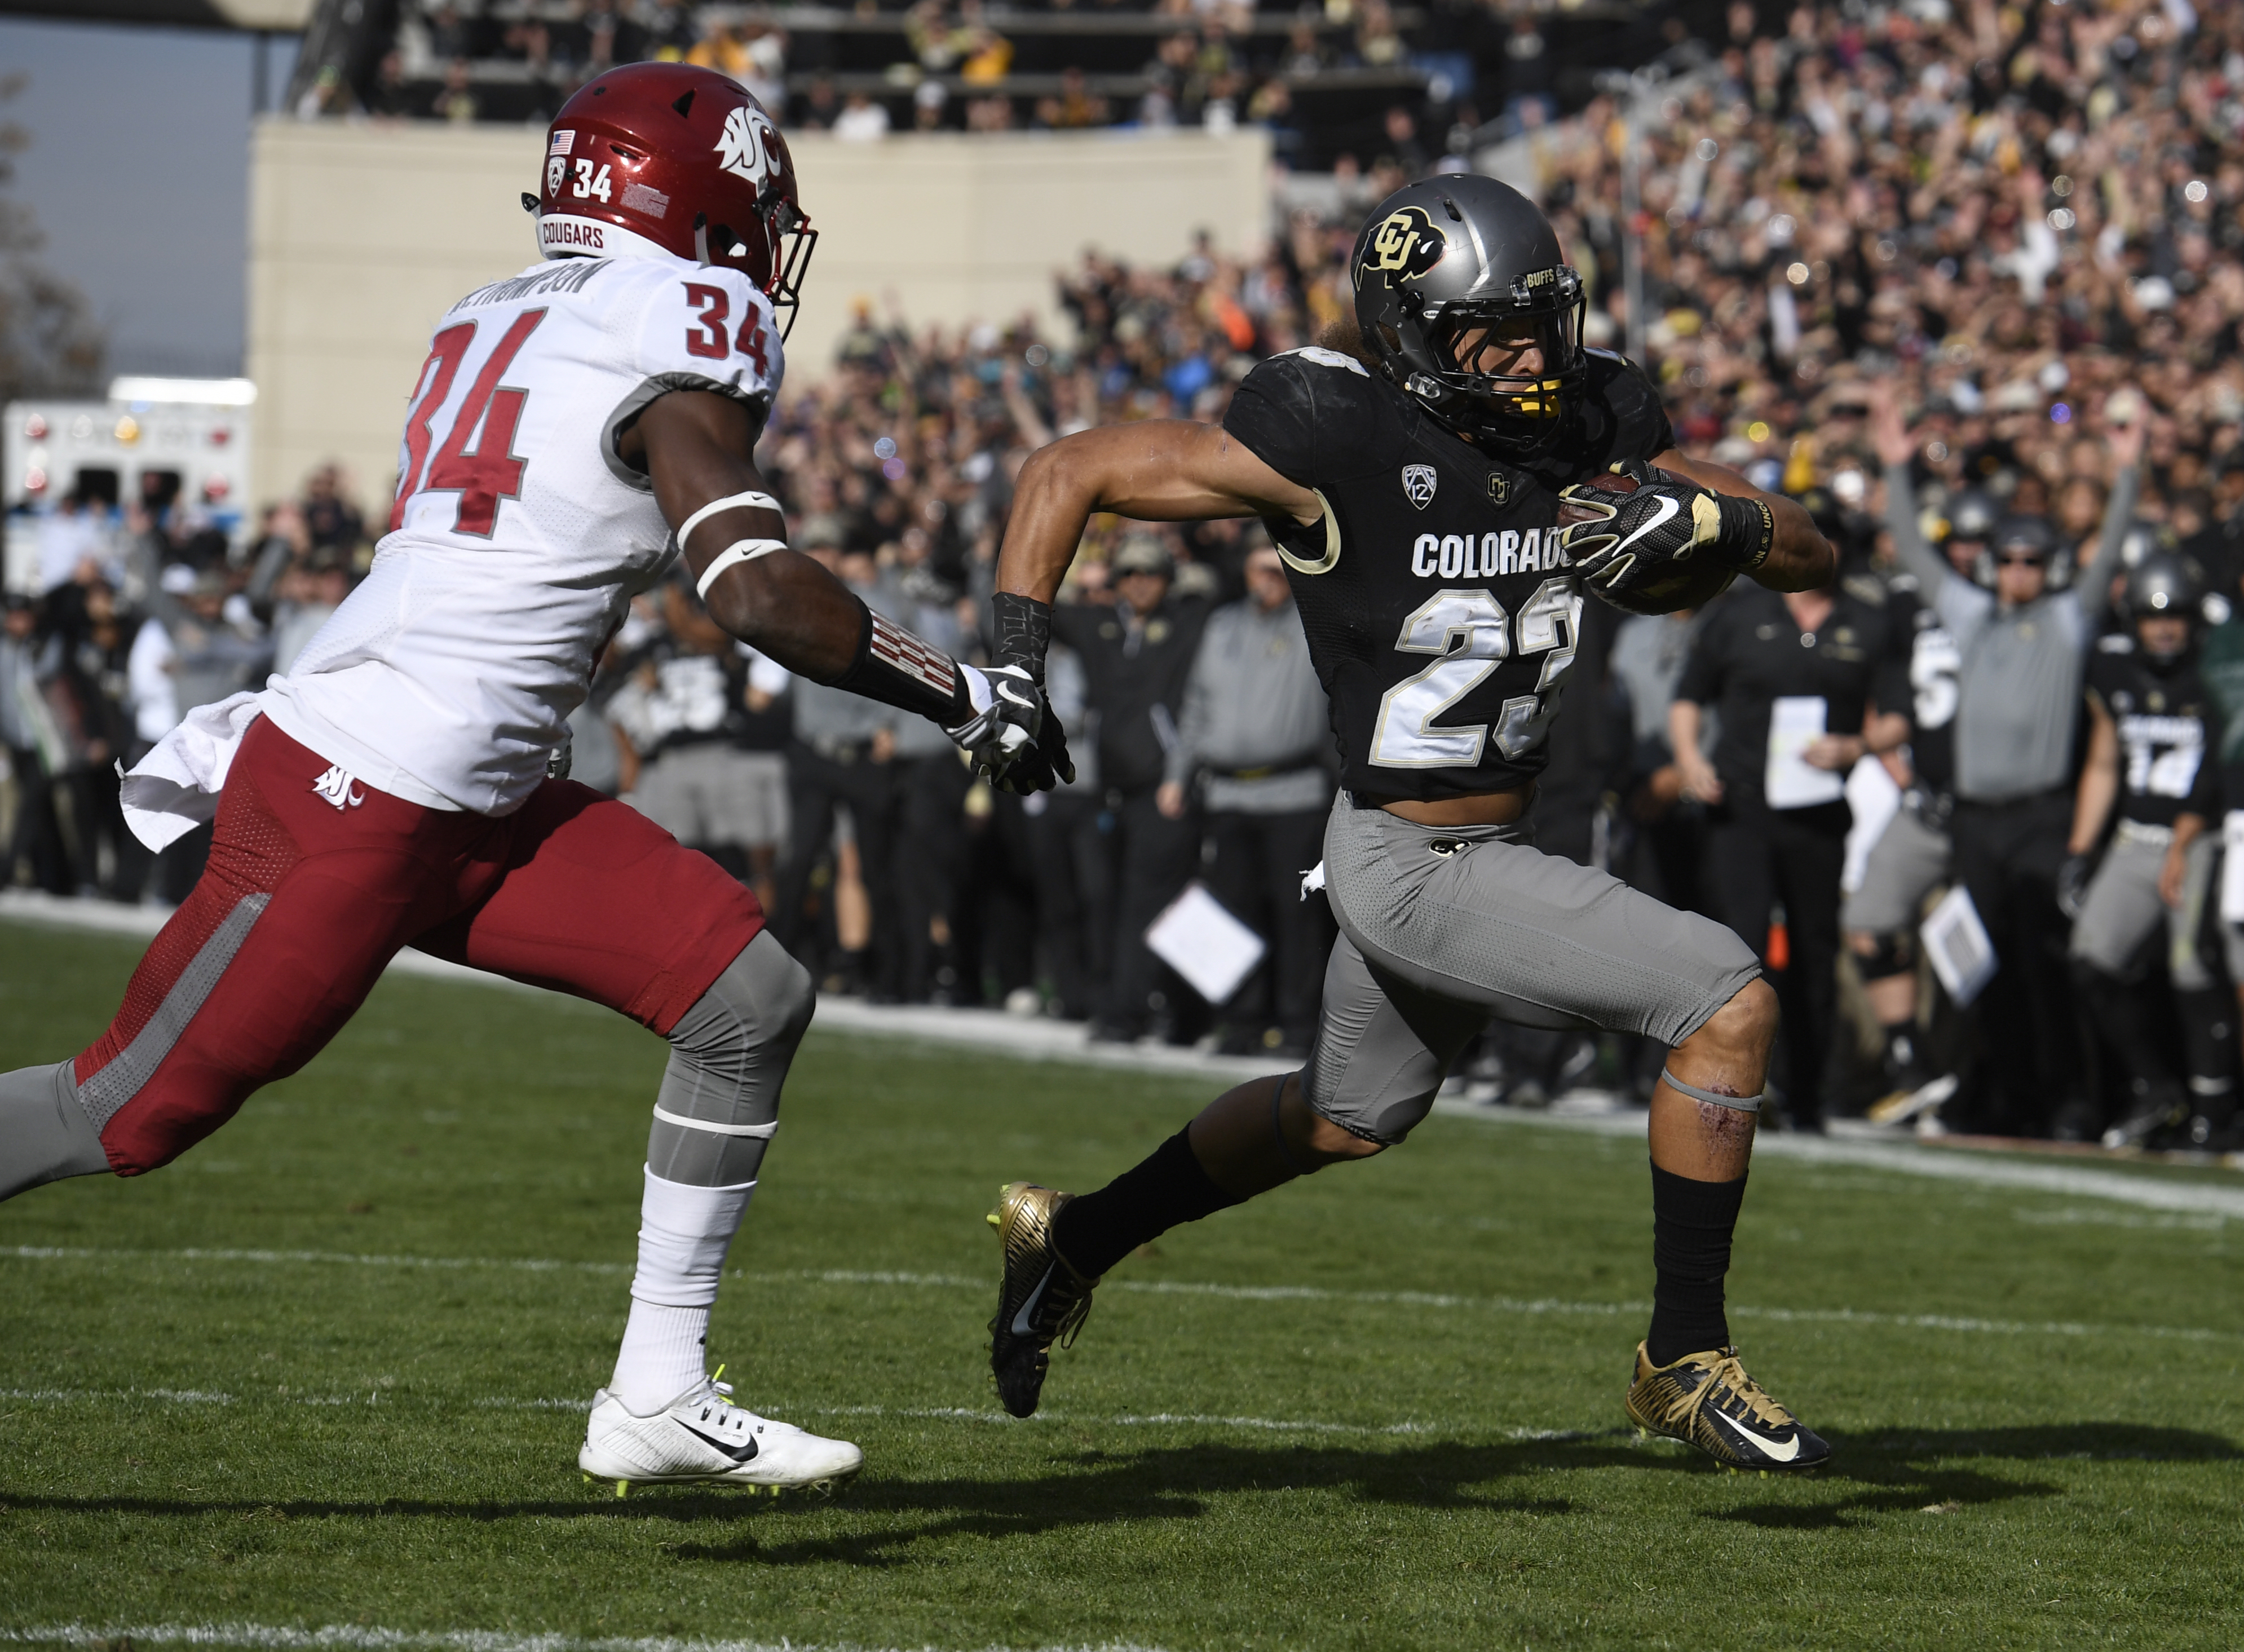 Colorado Buffaloes running back Phillip Lindsay gets past Washington State Cougars safety Jalen Thompson to score a touchdown in the first quarter at Folsom Field Nov. 19, 2016. (Photo by Andy Cross/The Denver Post via Getty Images)